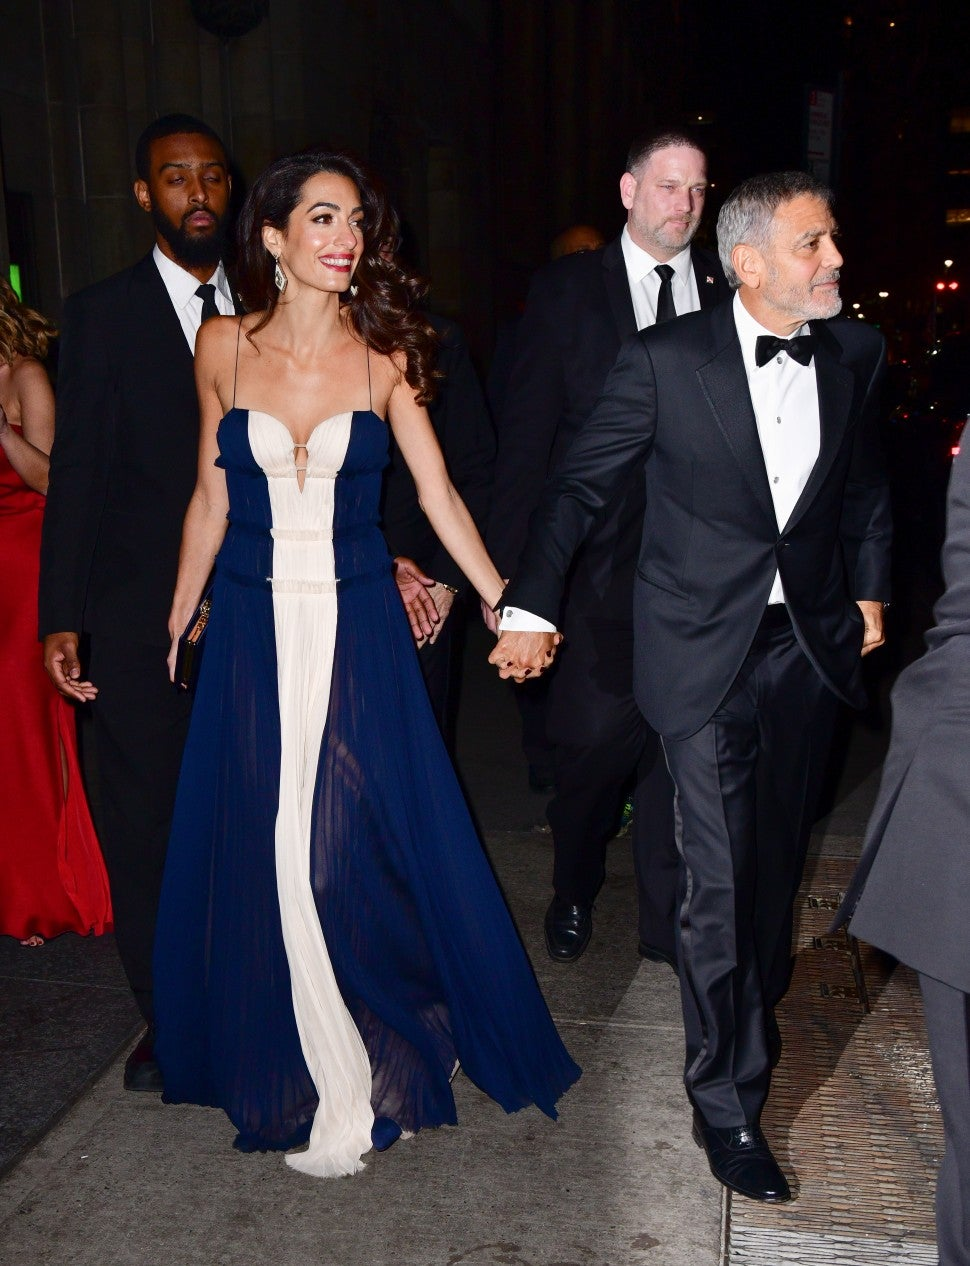 Amal and George Clooney arriving at 23rd Annual United Nations Correspondents Associations Awards